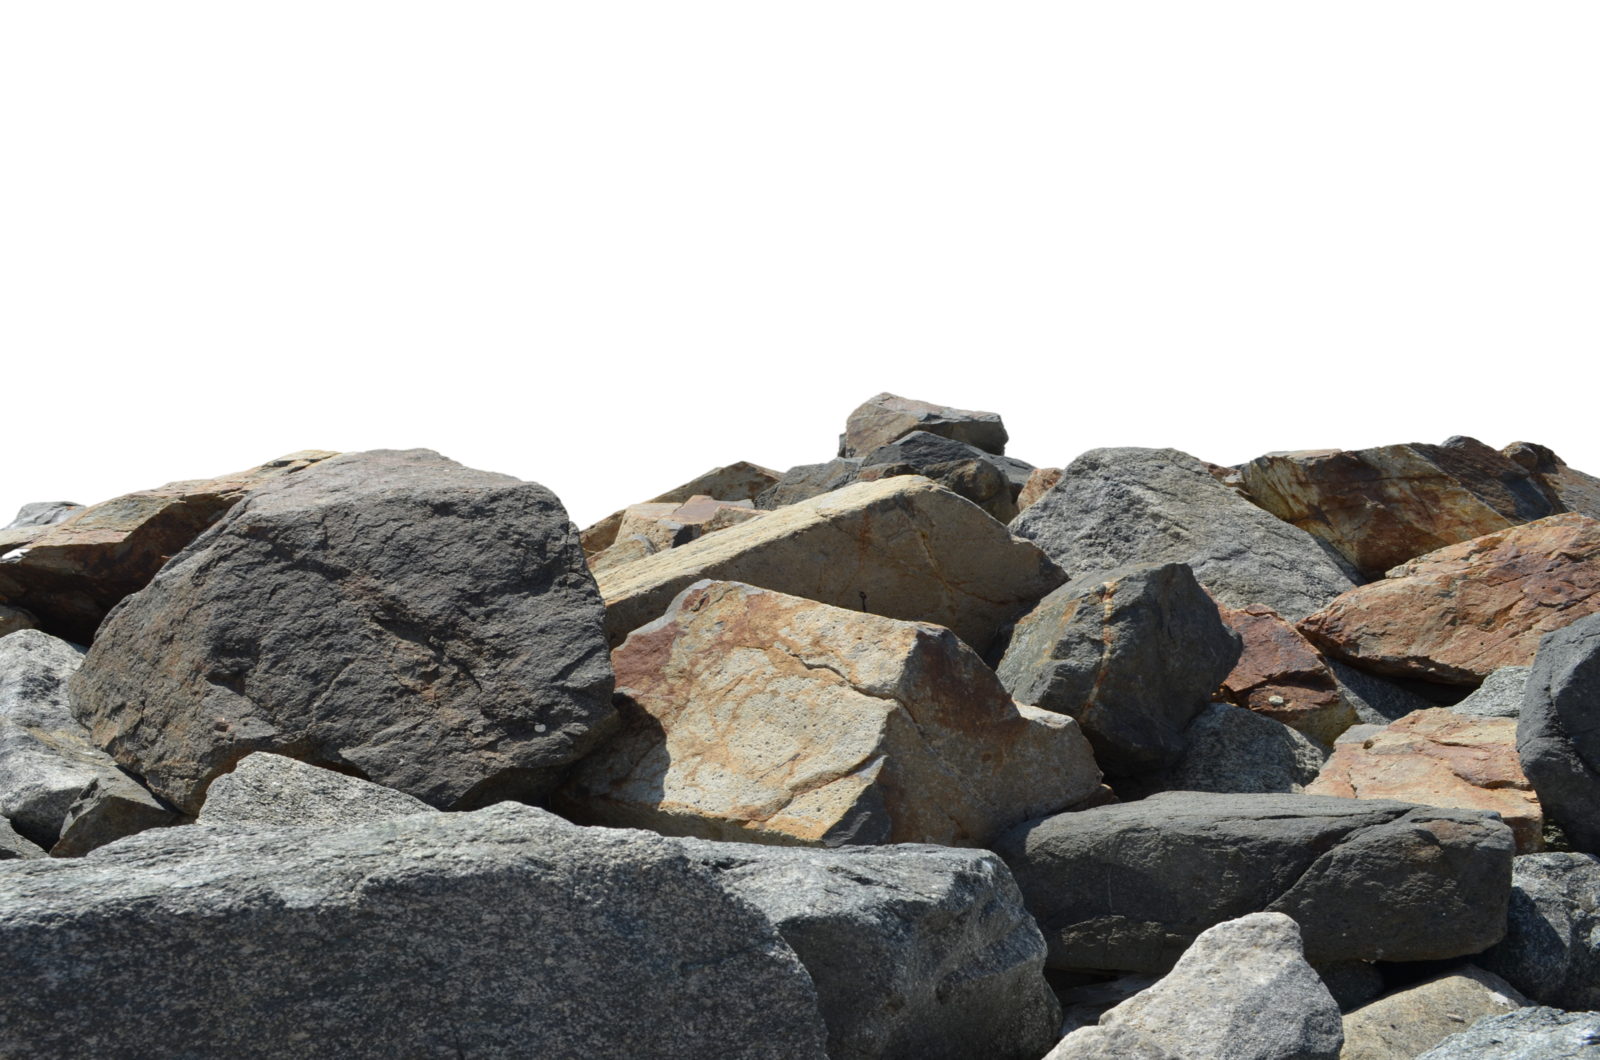 Rock images transparent free. Rocks png image black and white library